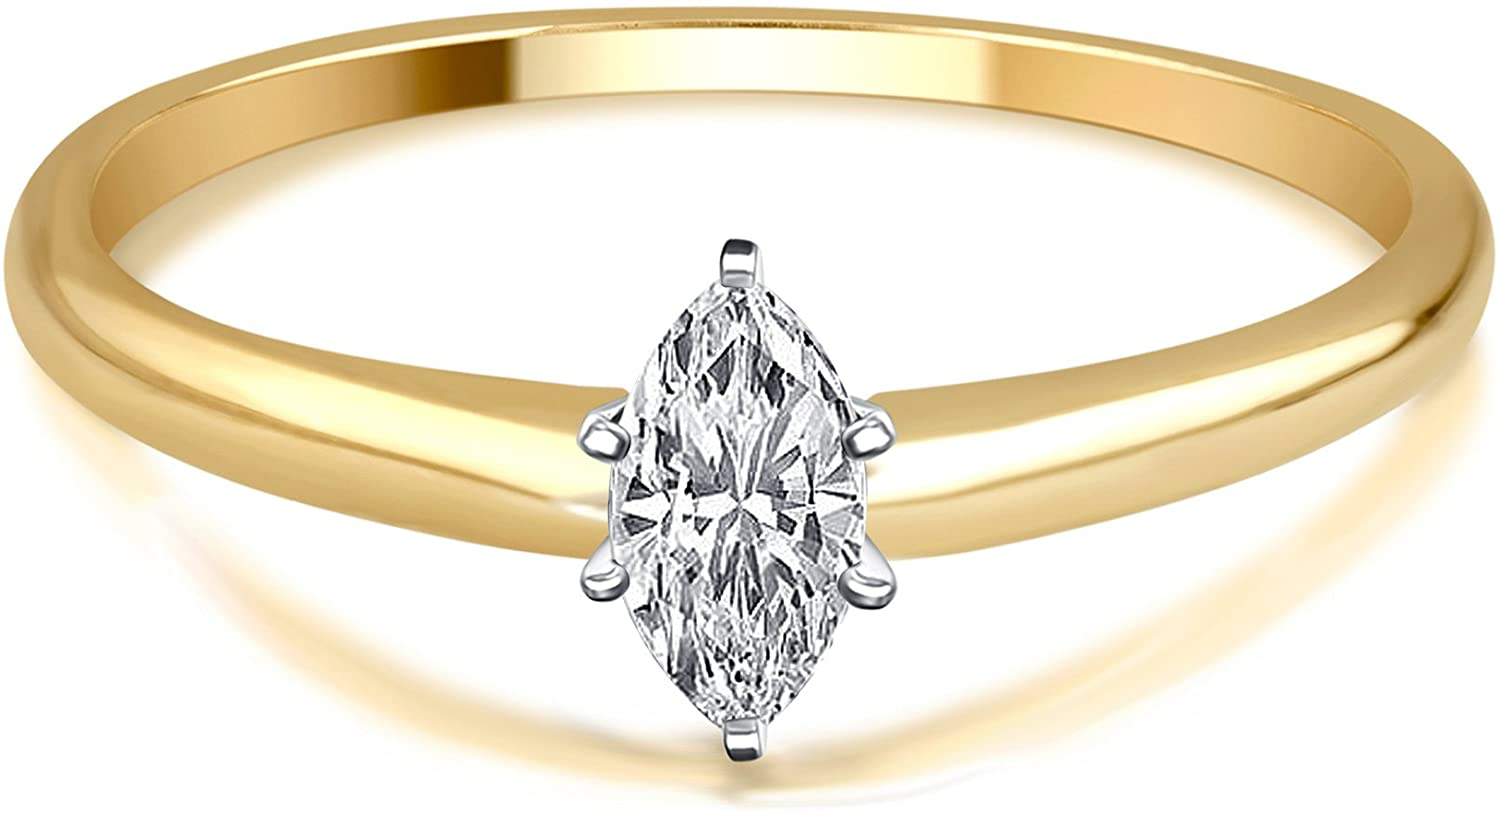 1/4 Cttw Marquise Diamond Solitaire Ring in 14K Yellow Gold